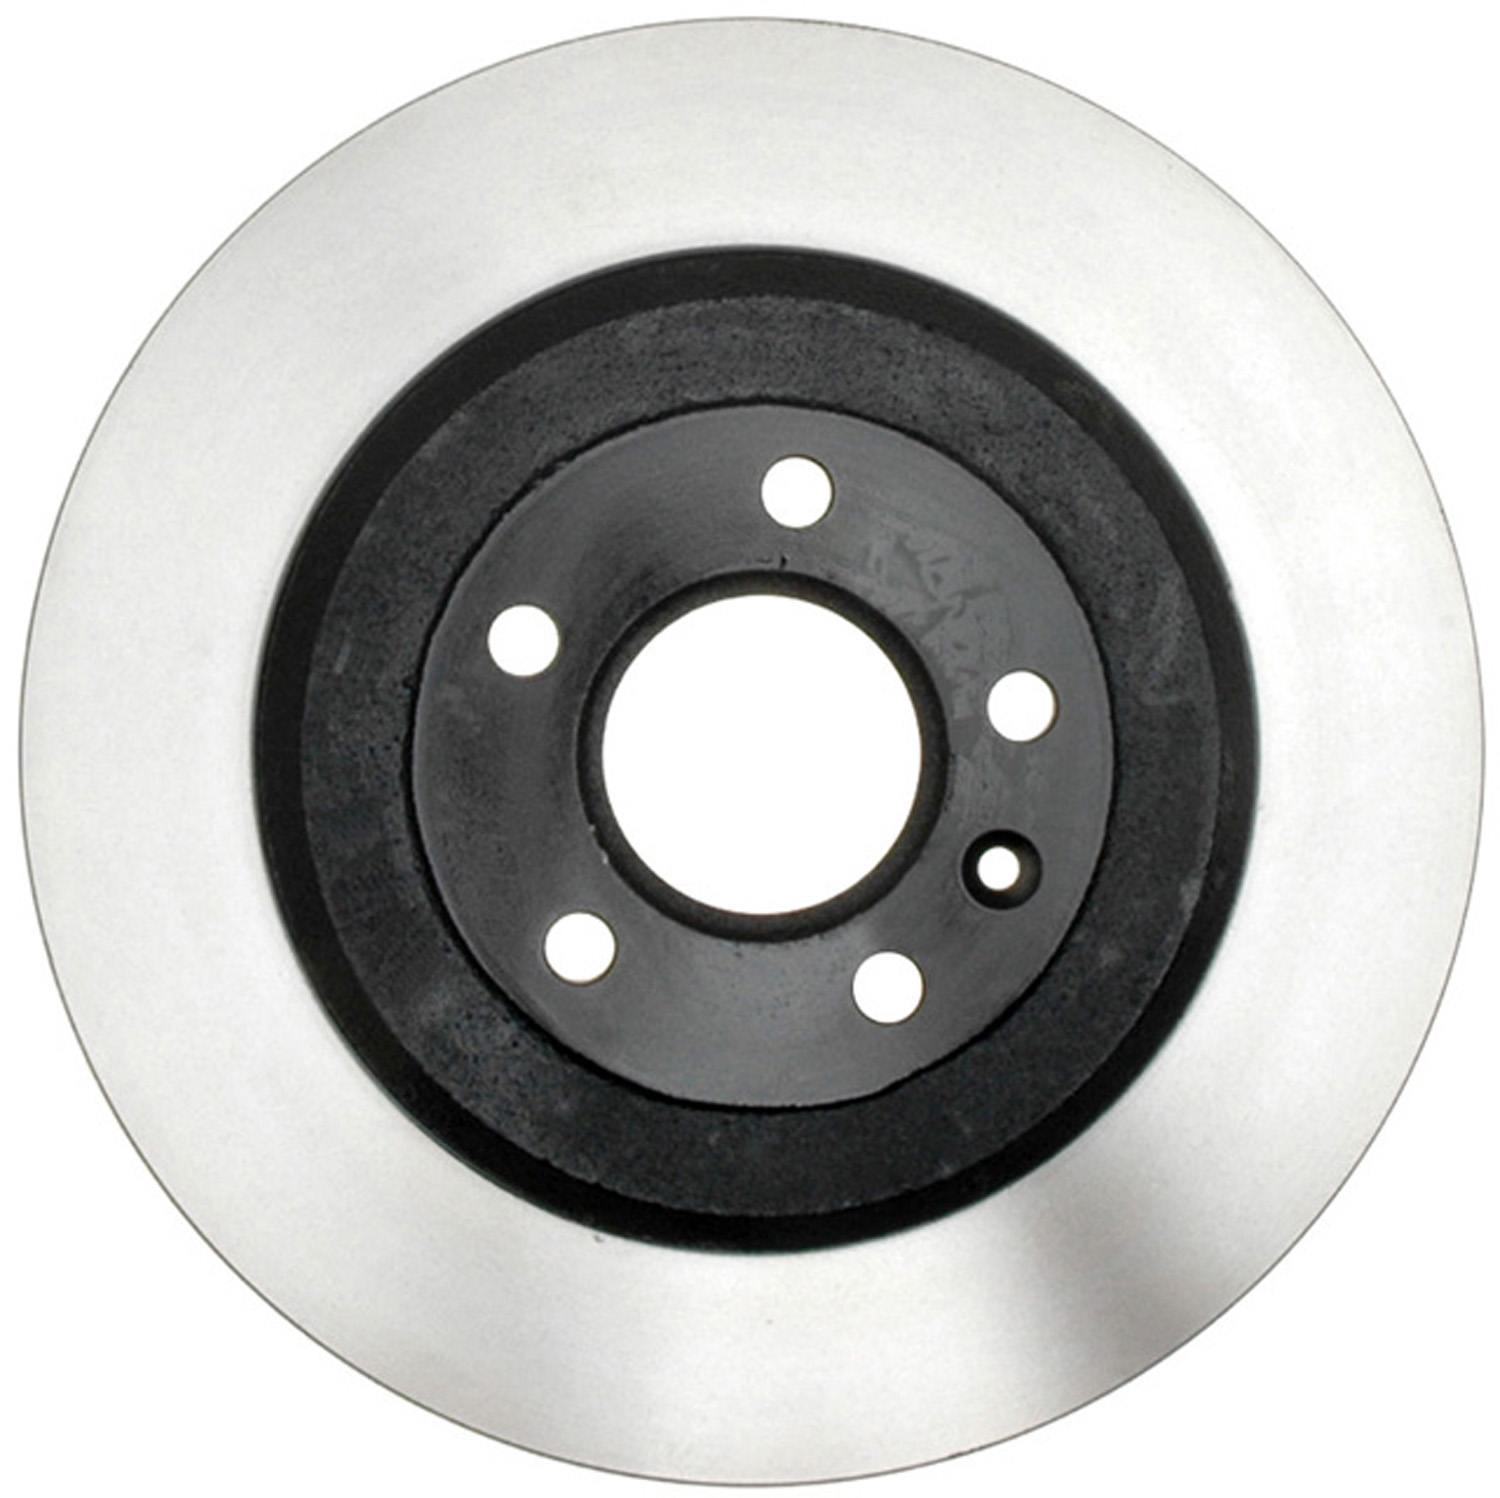 ACDELCO GOLD/PROFESSIONAL BRAKES - Black Hat (Rear) - ADU 18A2629